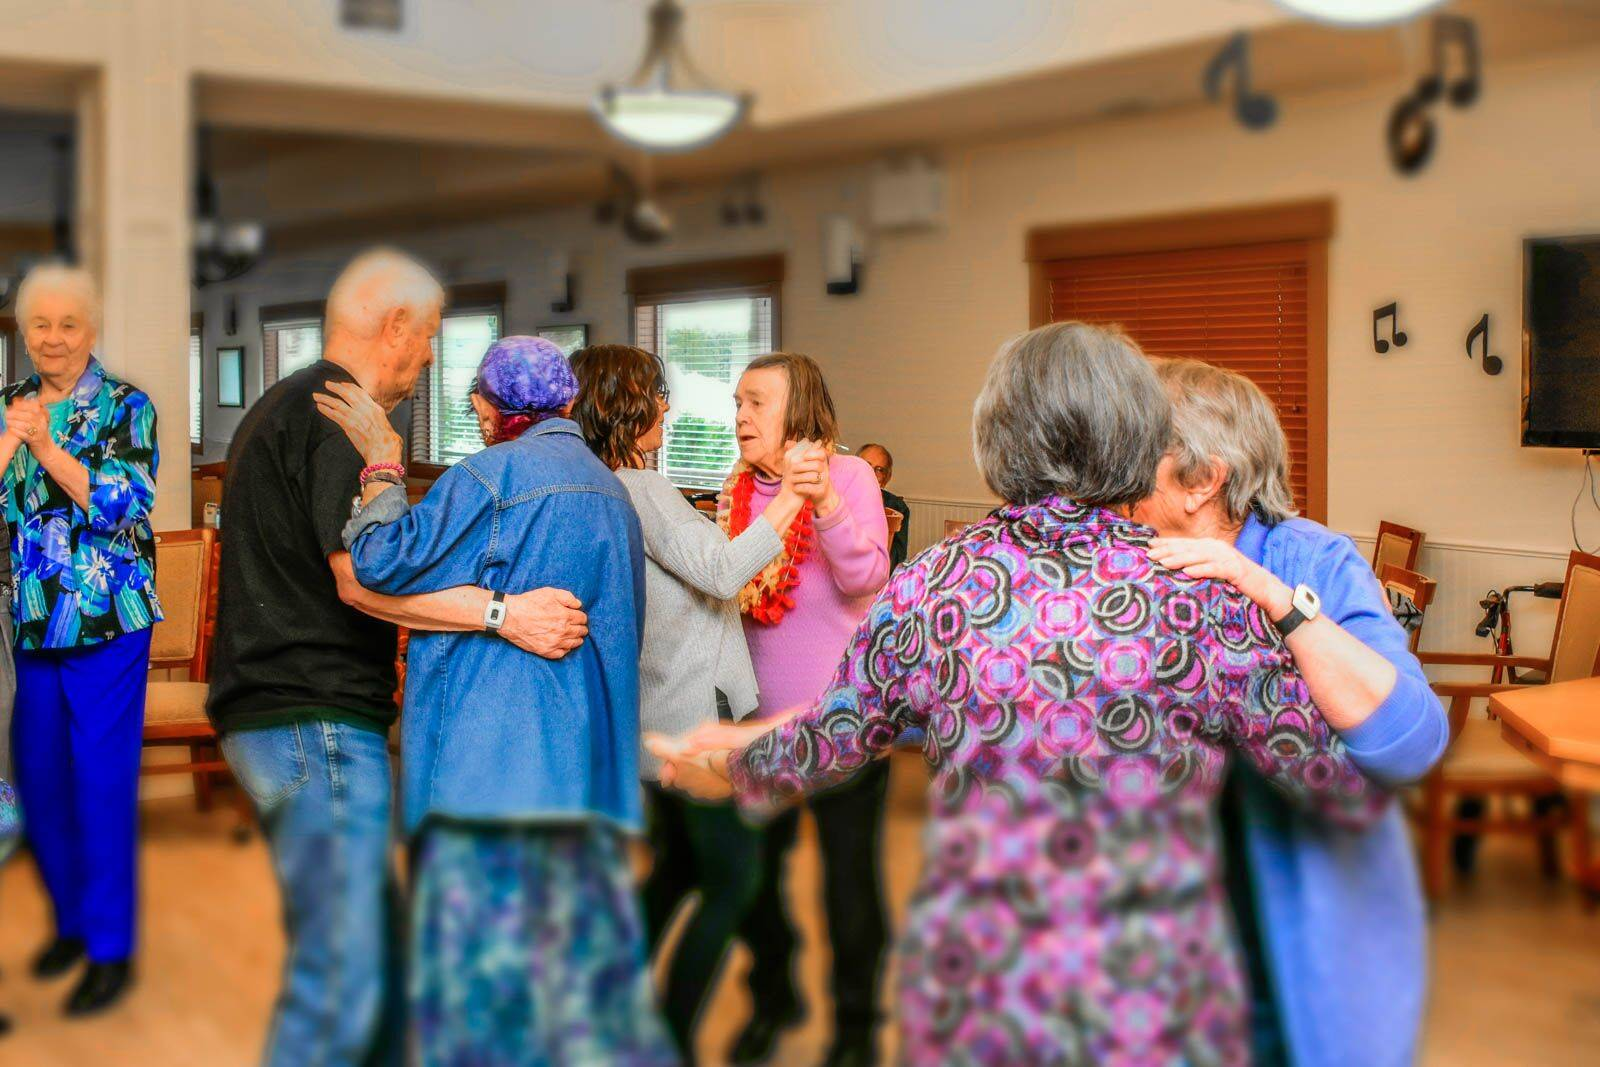 Heaton Place residents took part in the retirement community's first dance party stocked full with props and a photo booth. (Carrie O'Neill photo)